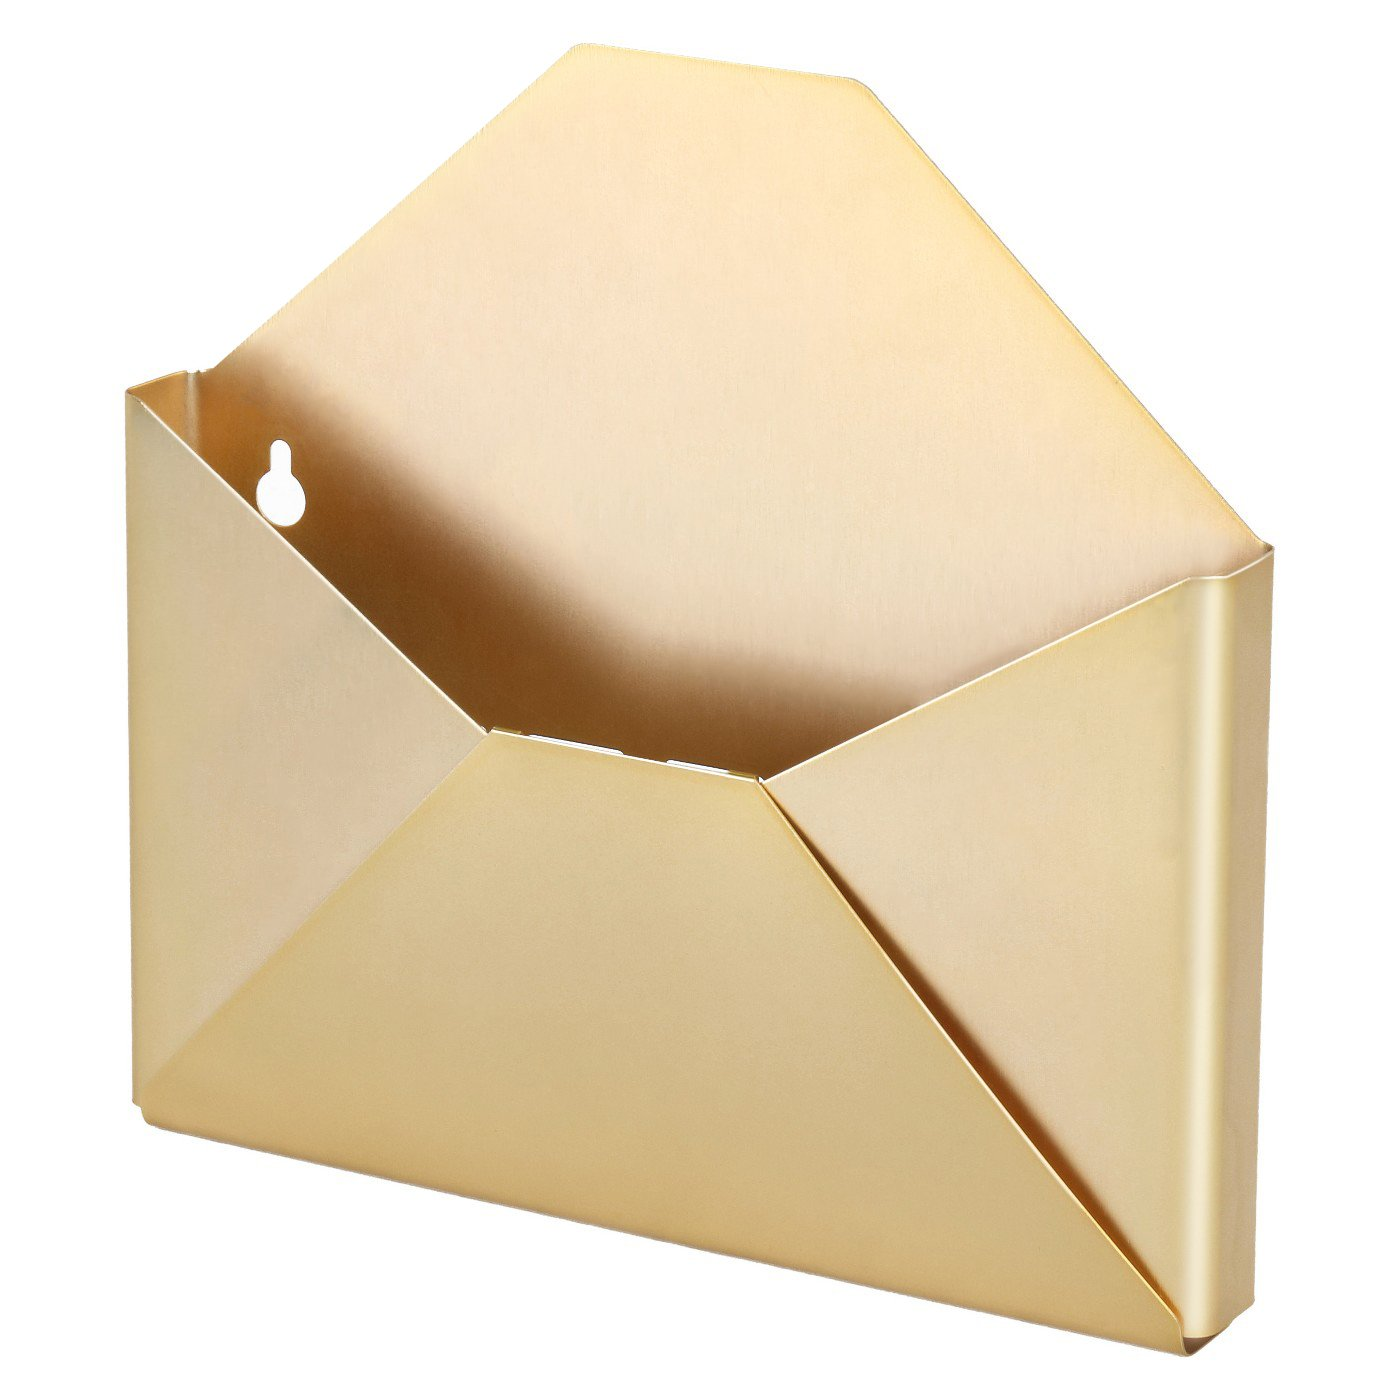 Amazon.com : DESIGNA Brass Wall Envelope Organizer, Pocket Letter ...